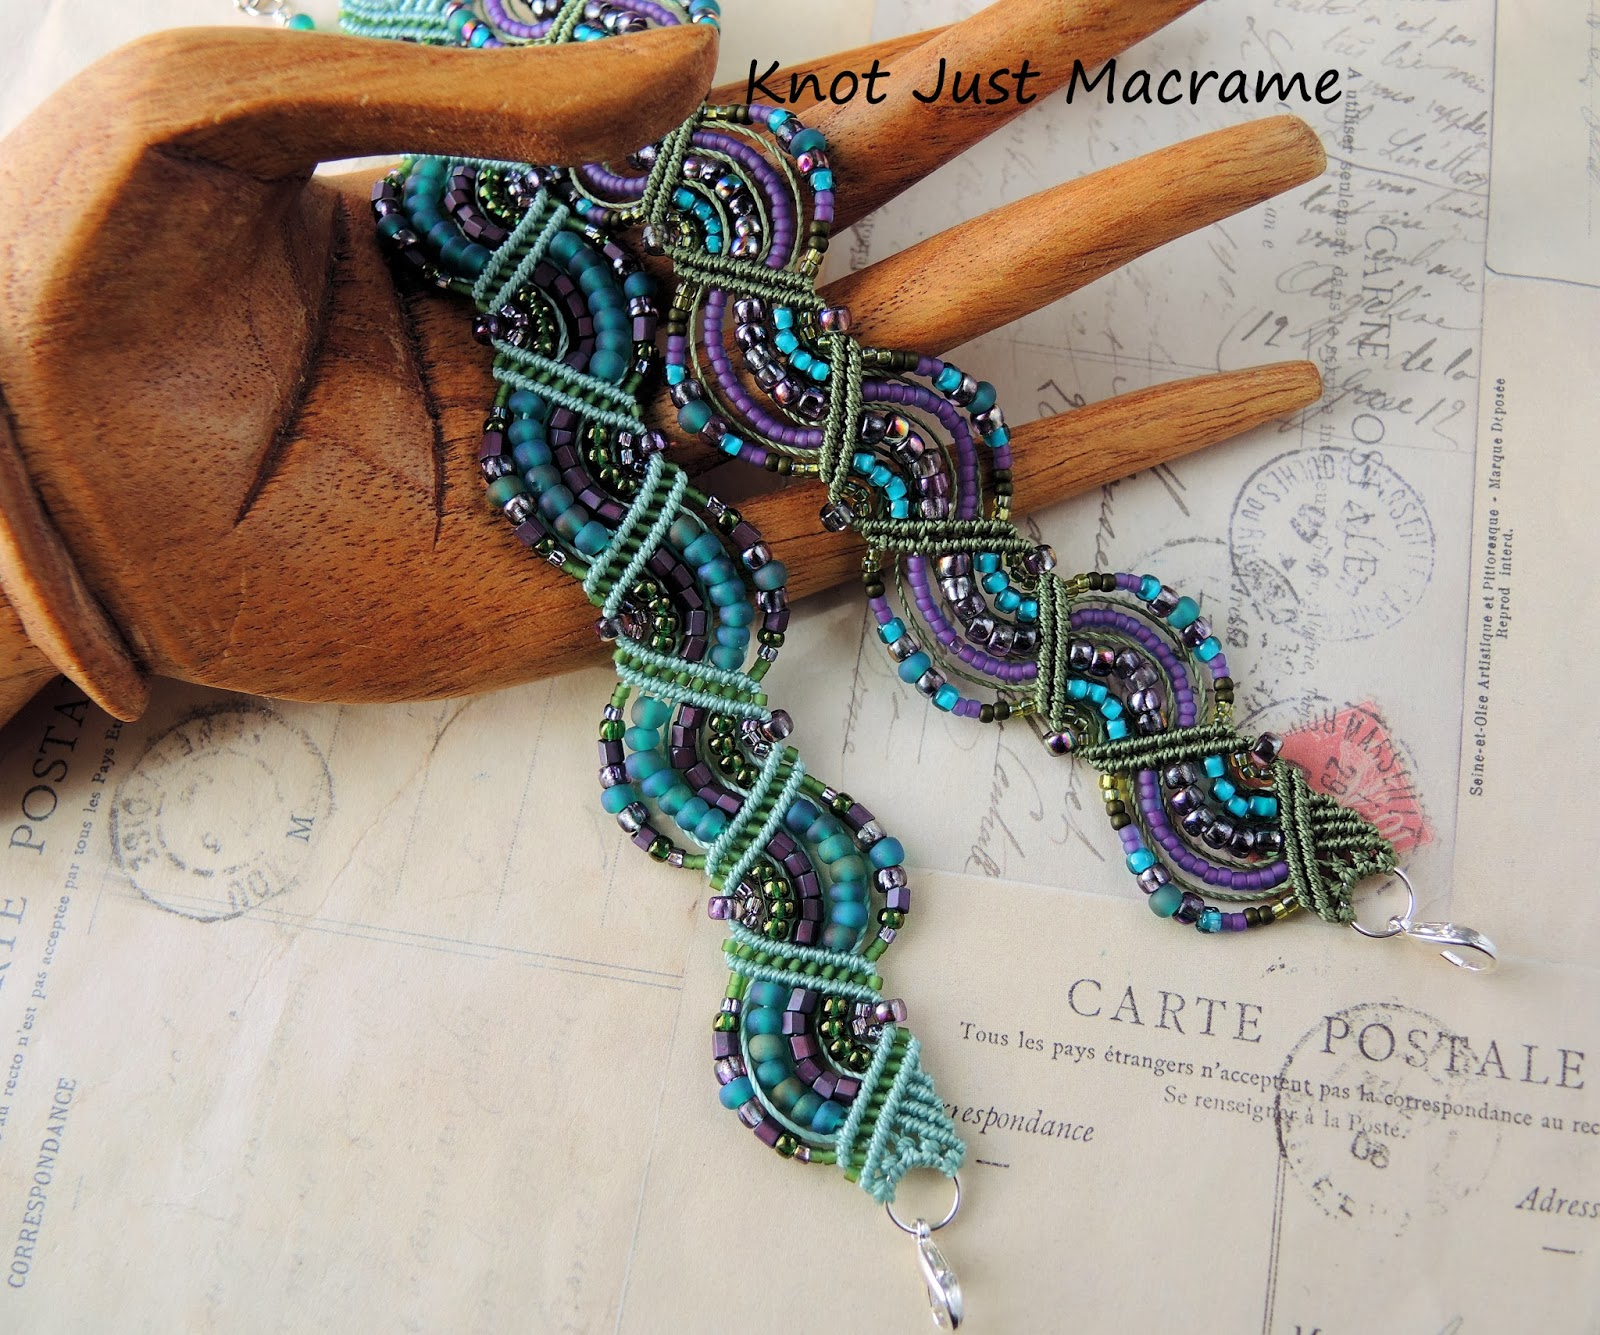 Wavy micro macrame bracelets in teal, purple and olive by Sherri Stokey